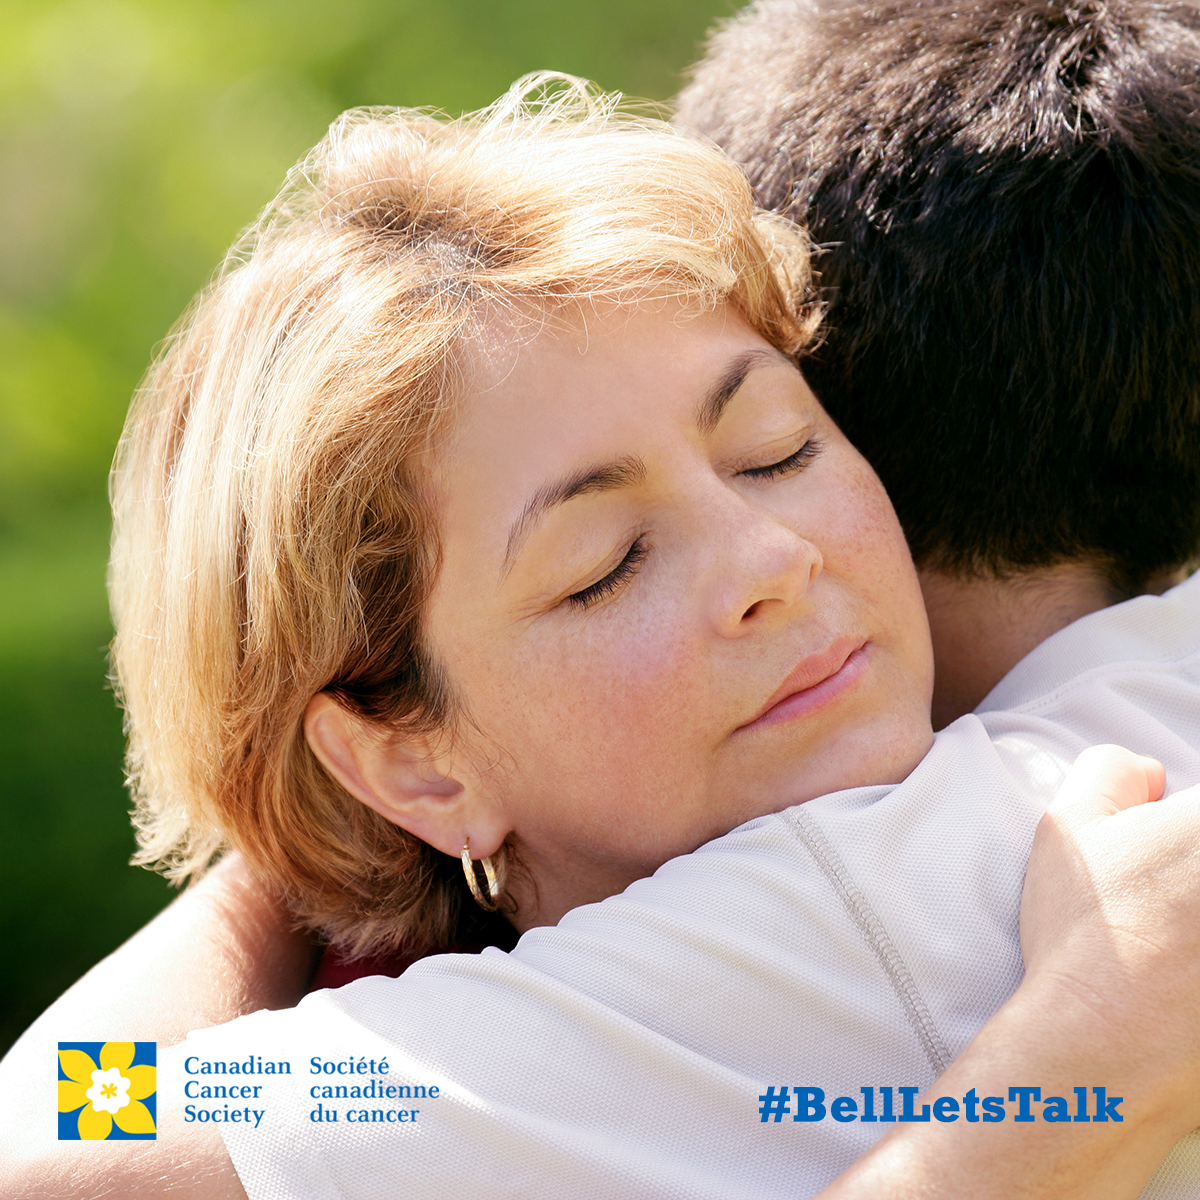 #Cancer can come with a wave of #emotions. We're here for you. Call 1-888-939-3333. #BellLetsTalk https://t.co/EPzHb9EGB3